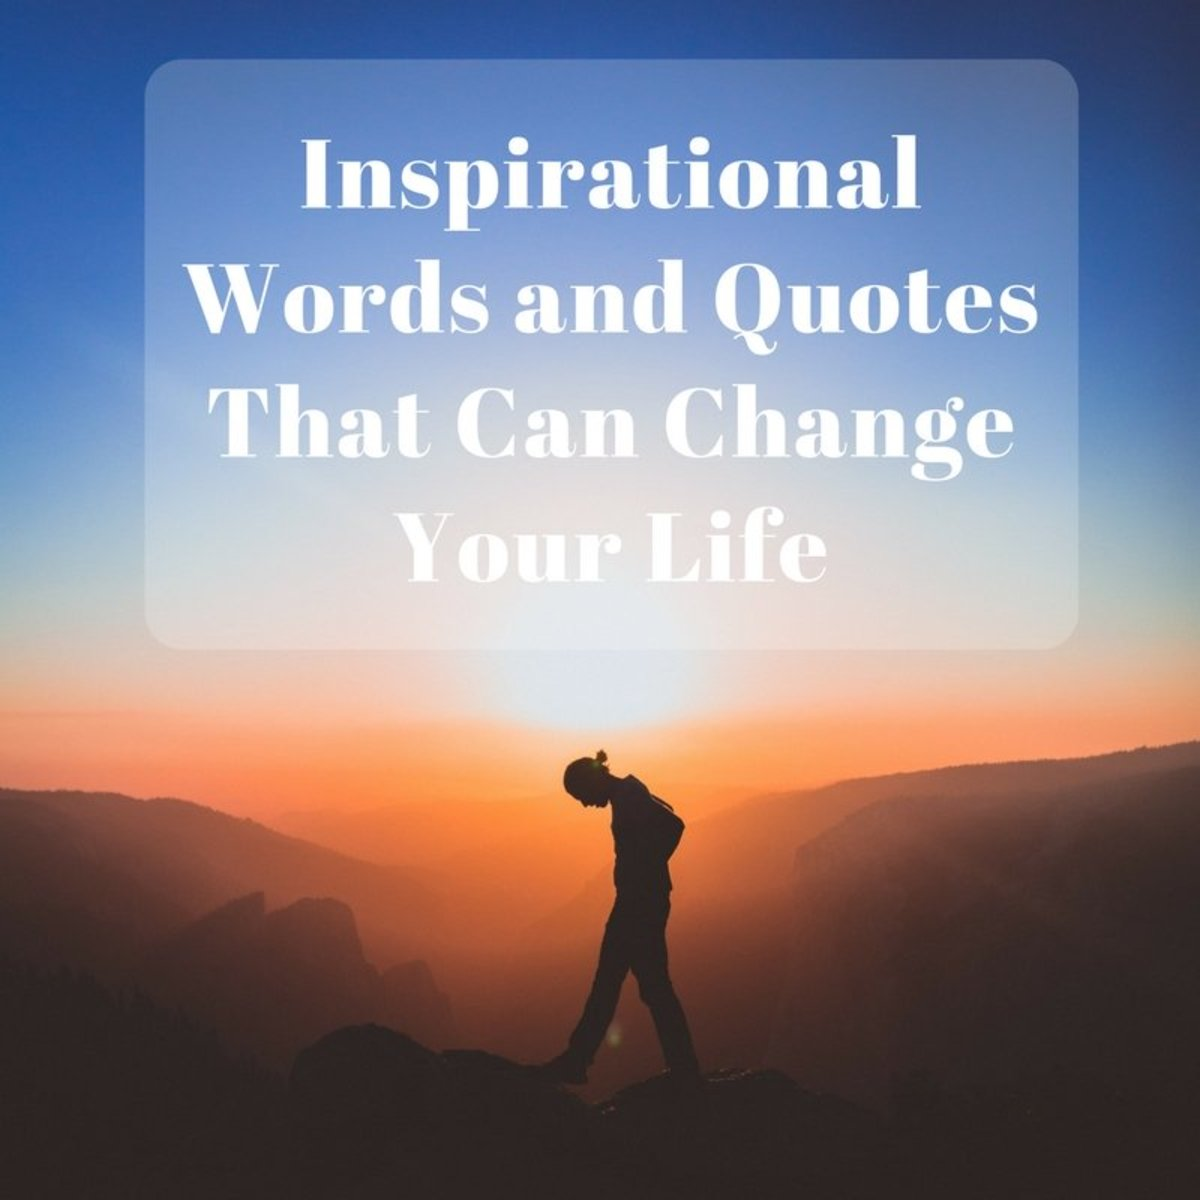 50+ Motivational Words and Quotes That Can Change Your Life